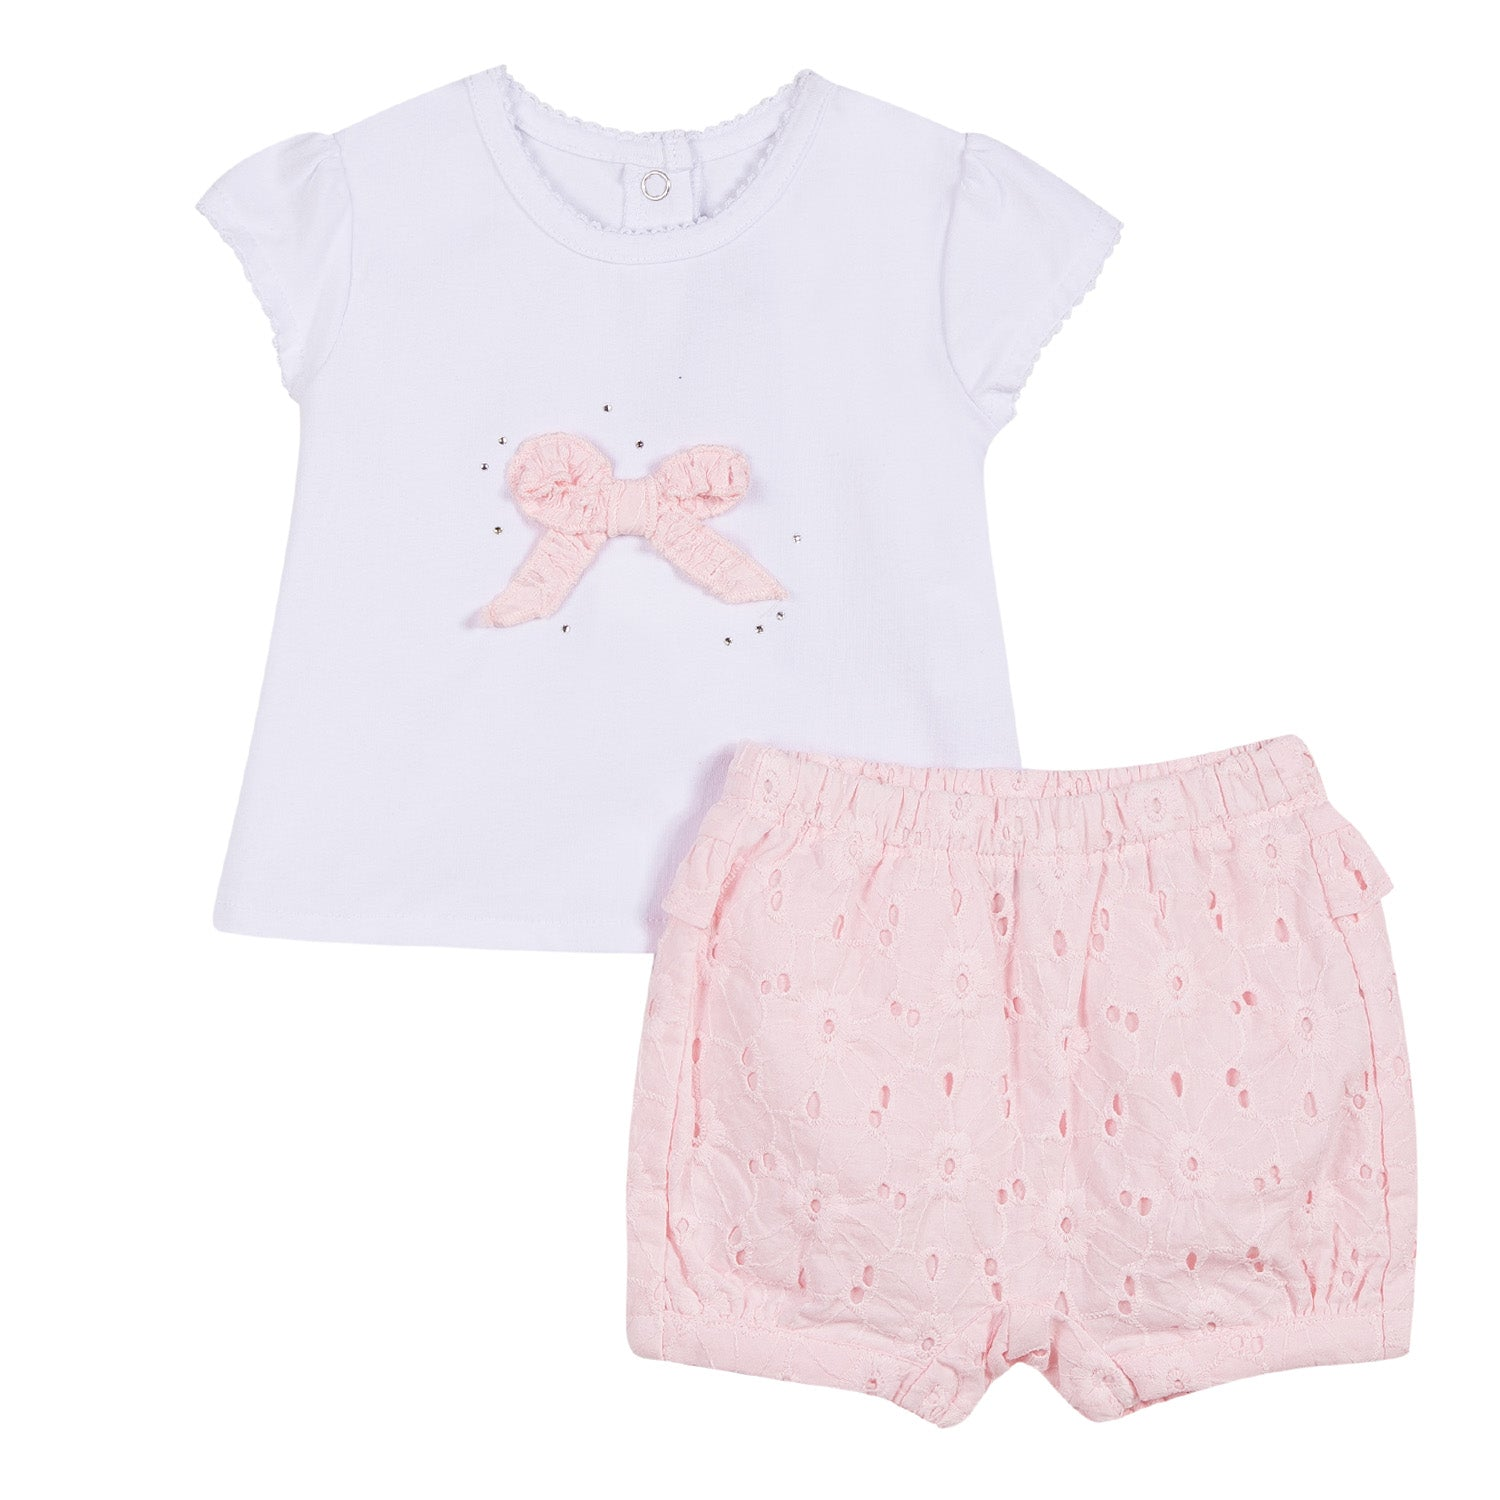 Absorba Pink & White Two Piece Set